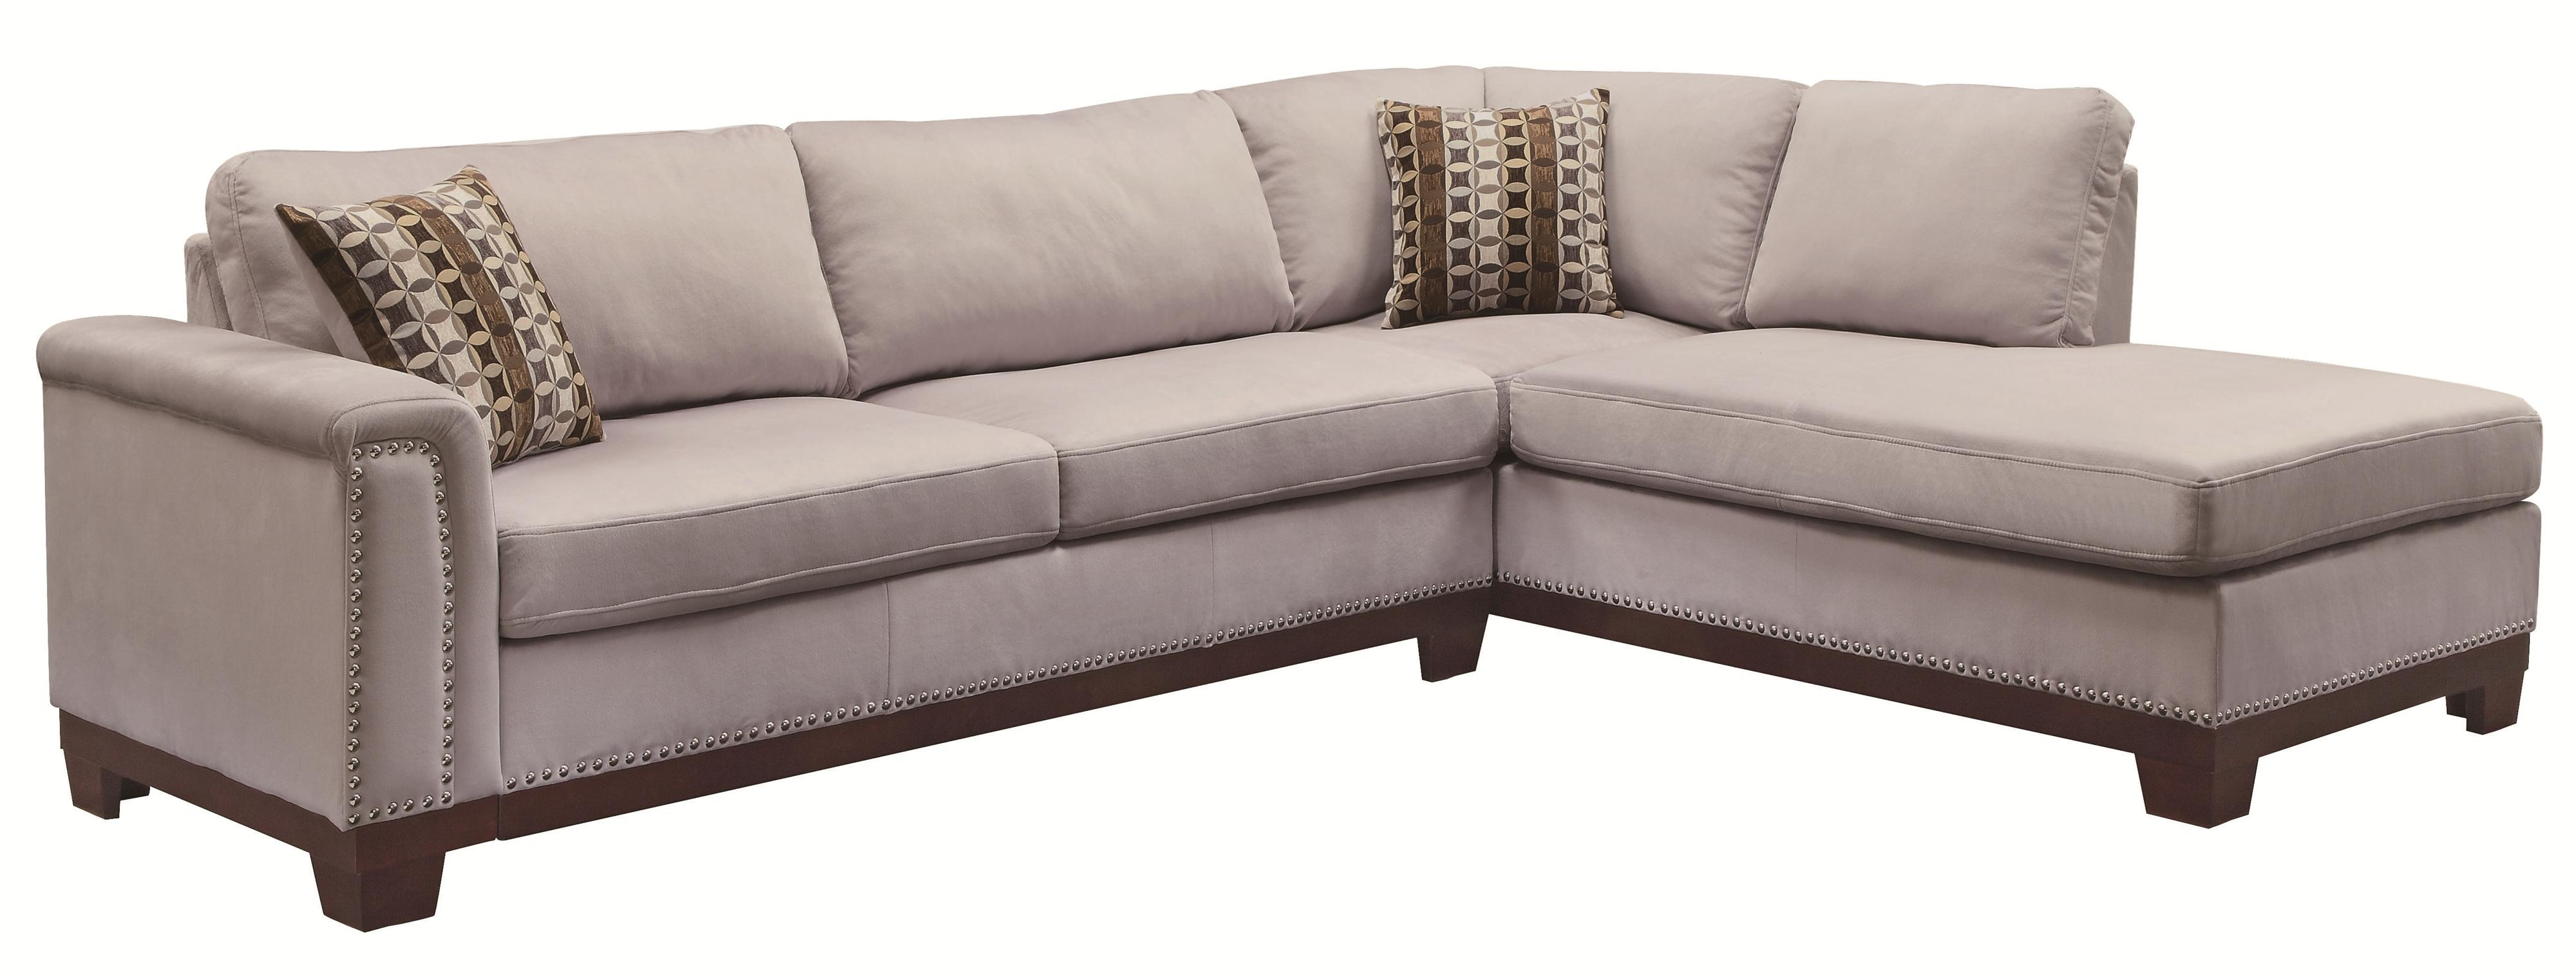 Most Recently Released Large Sectional Sofas Big Lots Outdoor Furniture Apartment Size For Microfiber Sectionals With Chaise (View 11 of 15)